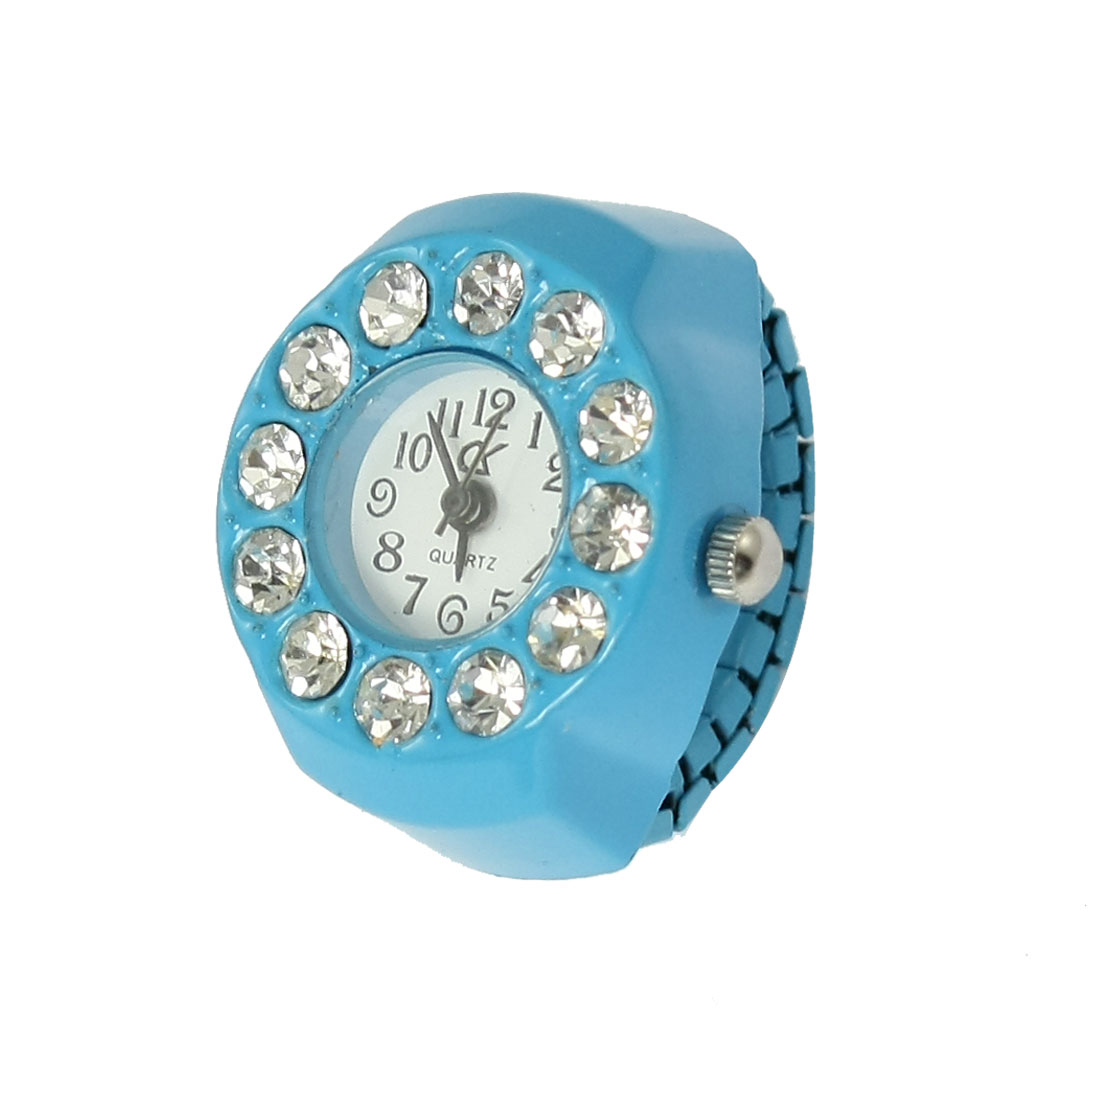 Women Sky Blue Stretch Band Round Face Ring Finger Jewelry Watch US 3 1/2